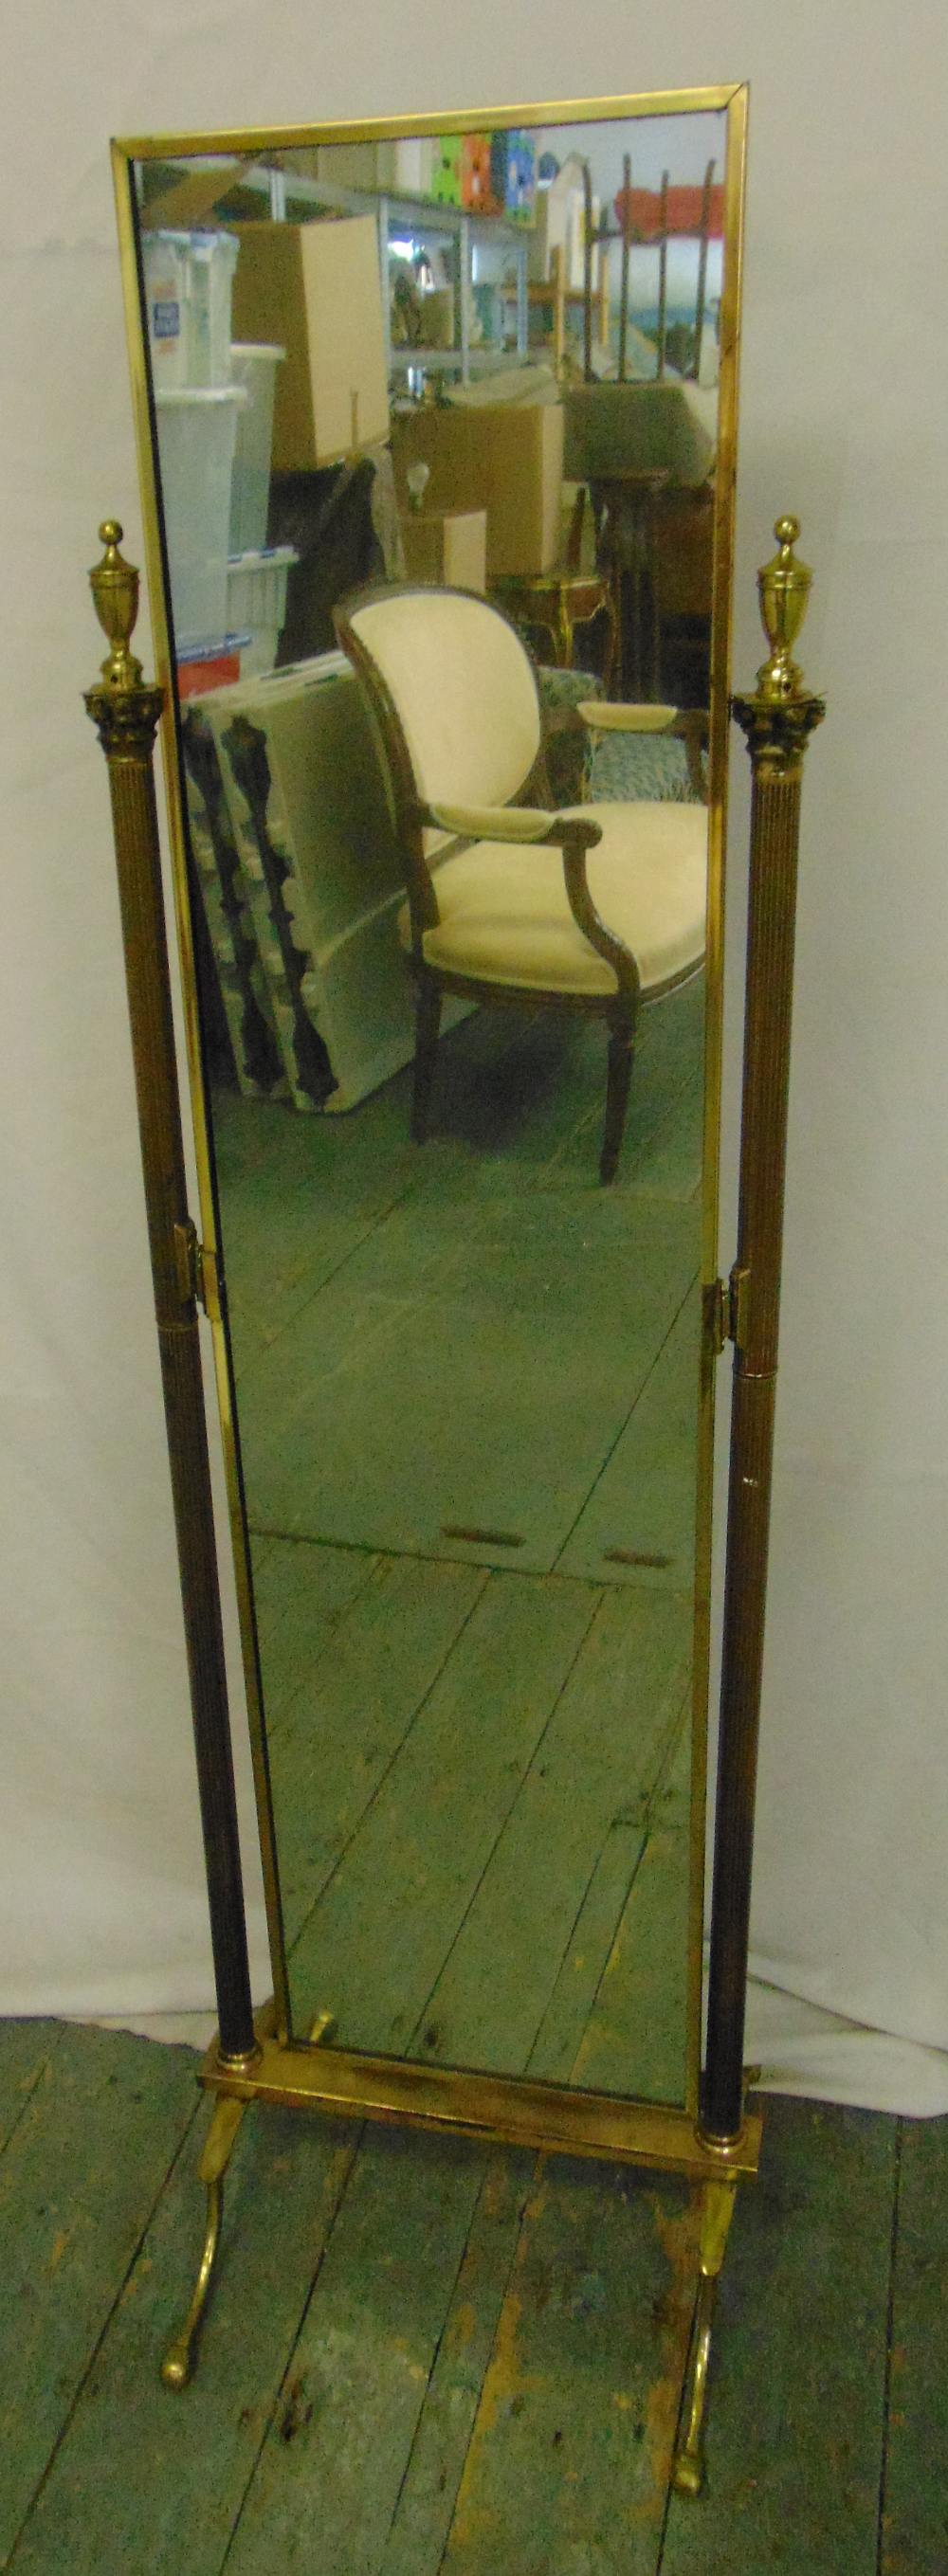 Lot 26 - A gilded metal rectangular cheval mirror with urn finials to the sides on four scroll supports,